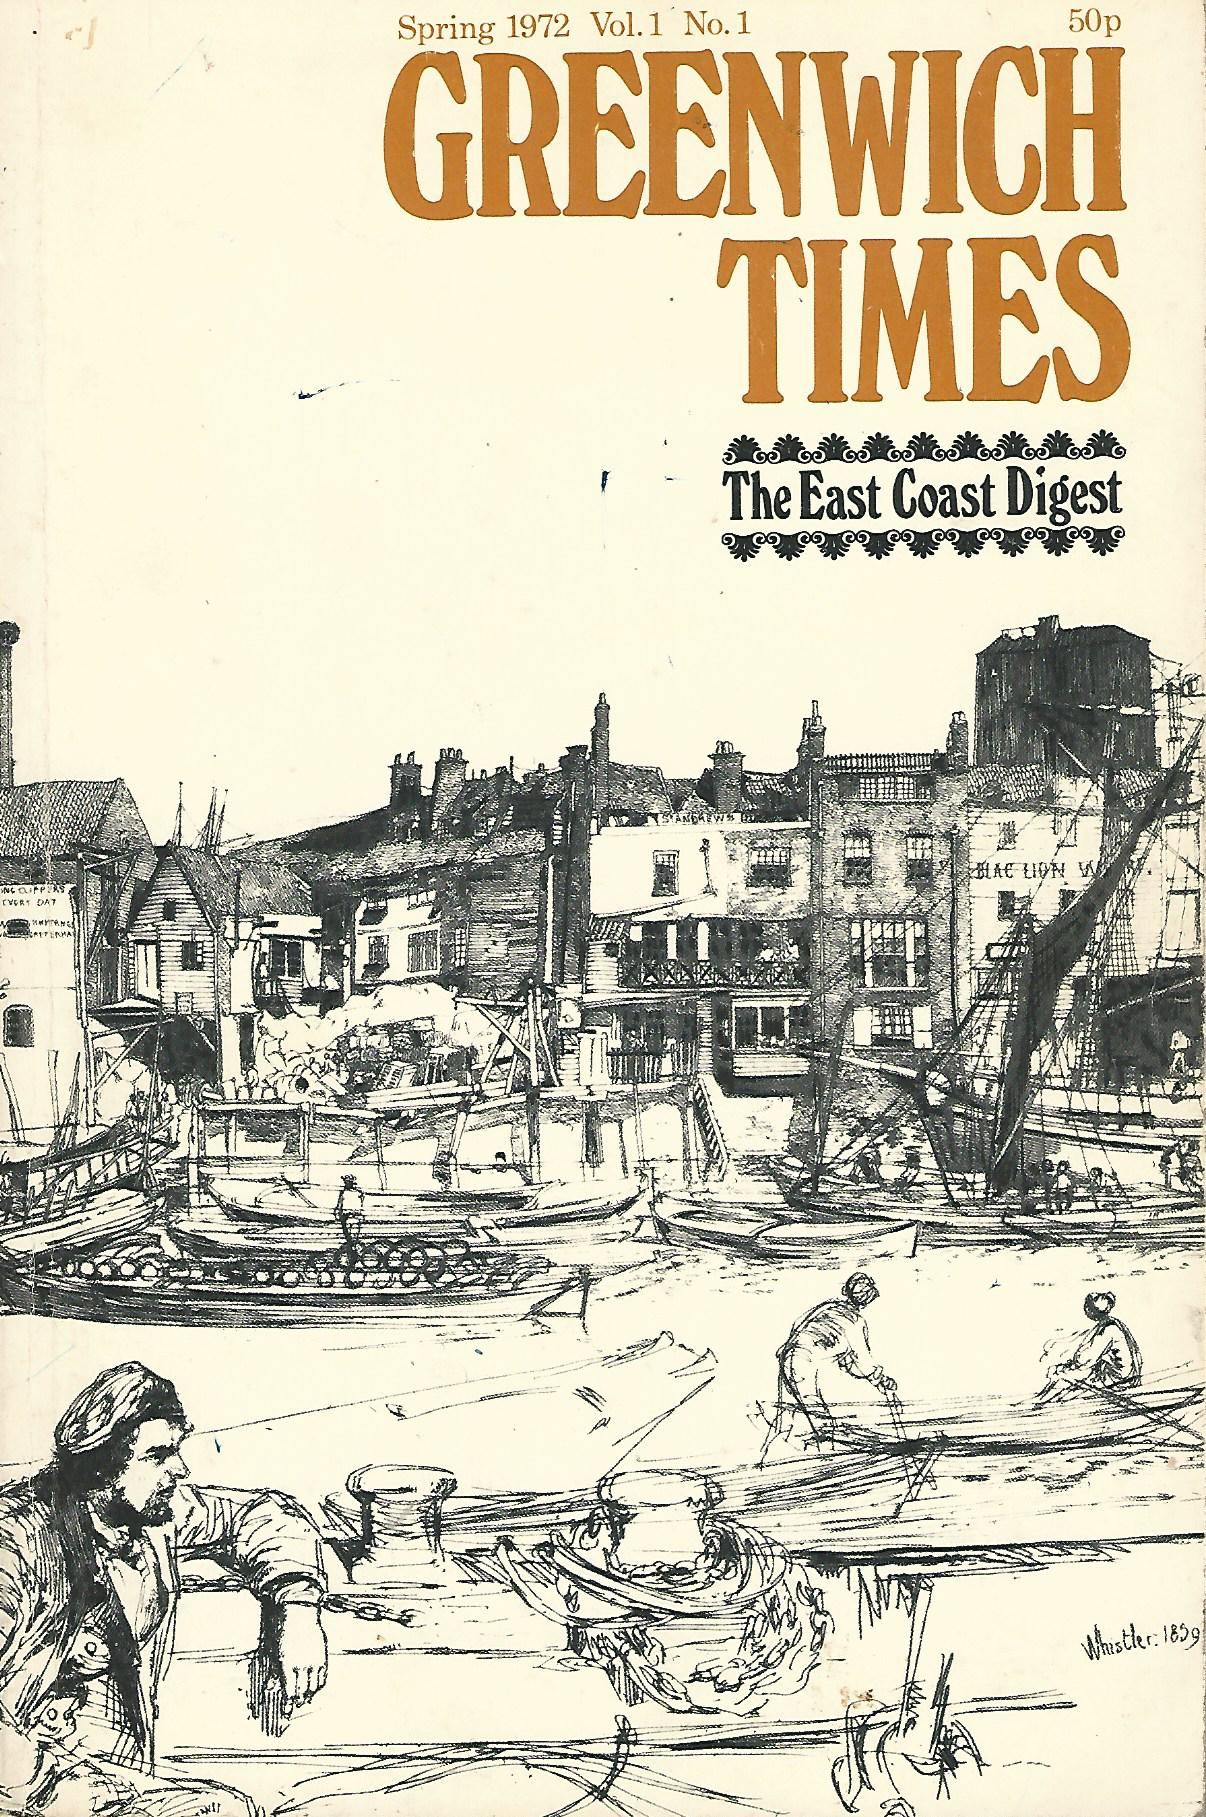 Image for East Coast Digest & Greenwich Times Vol.1 No.1.